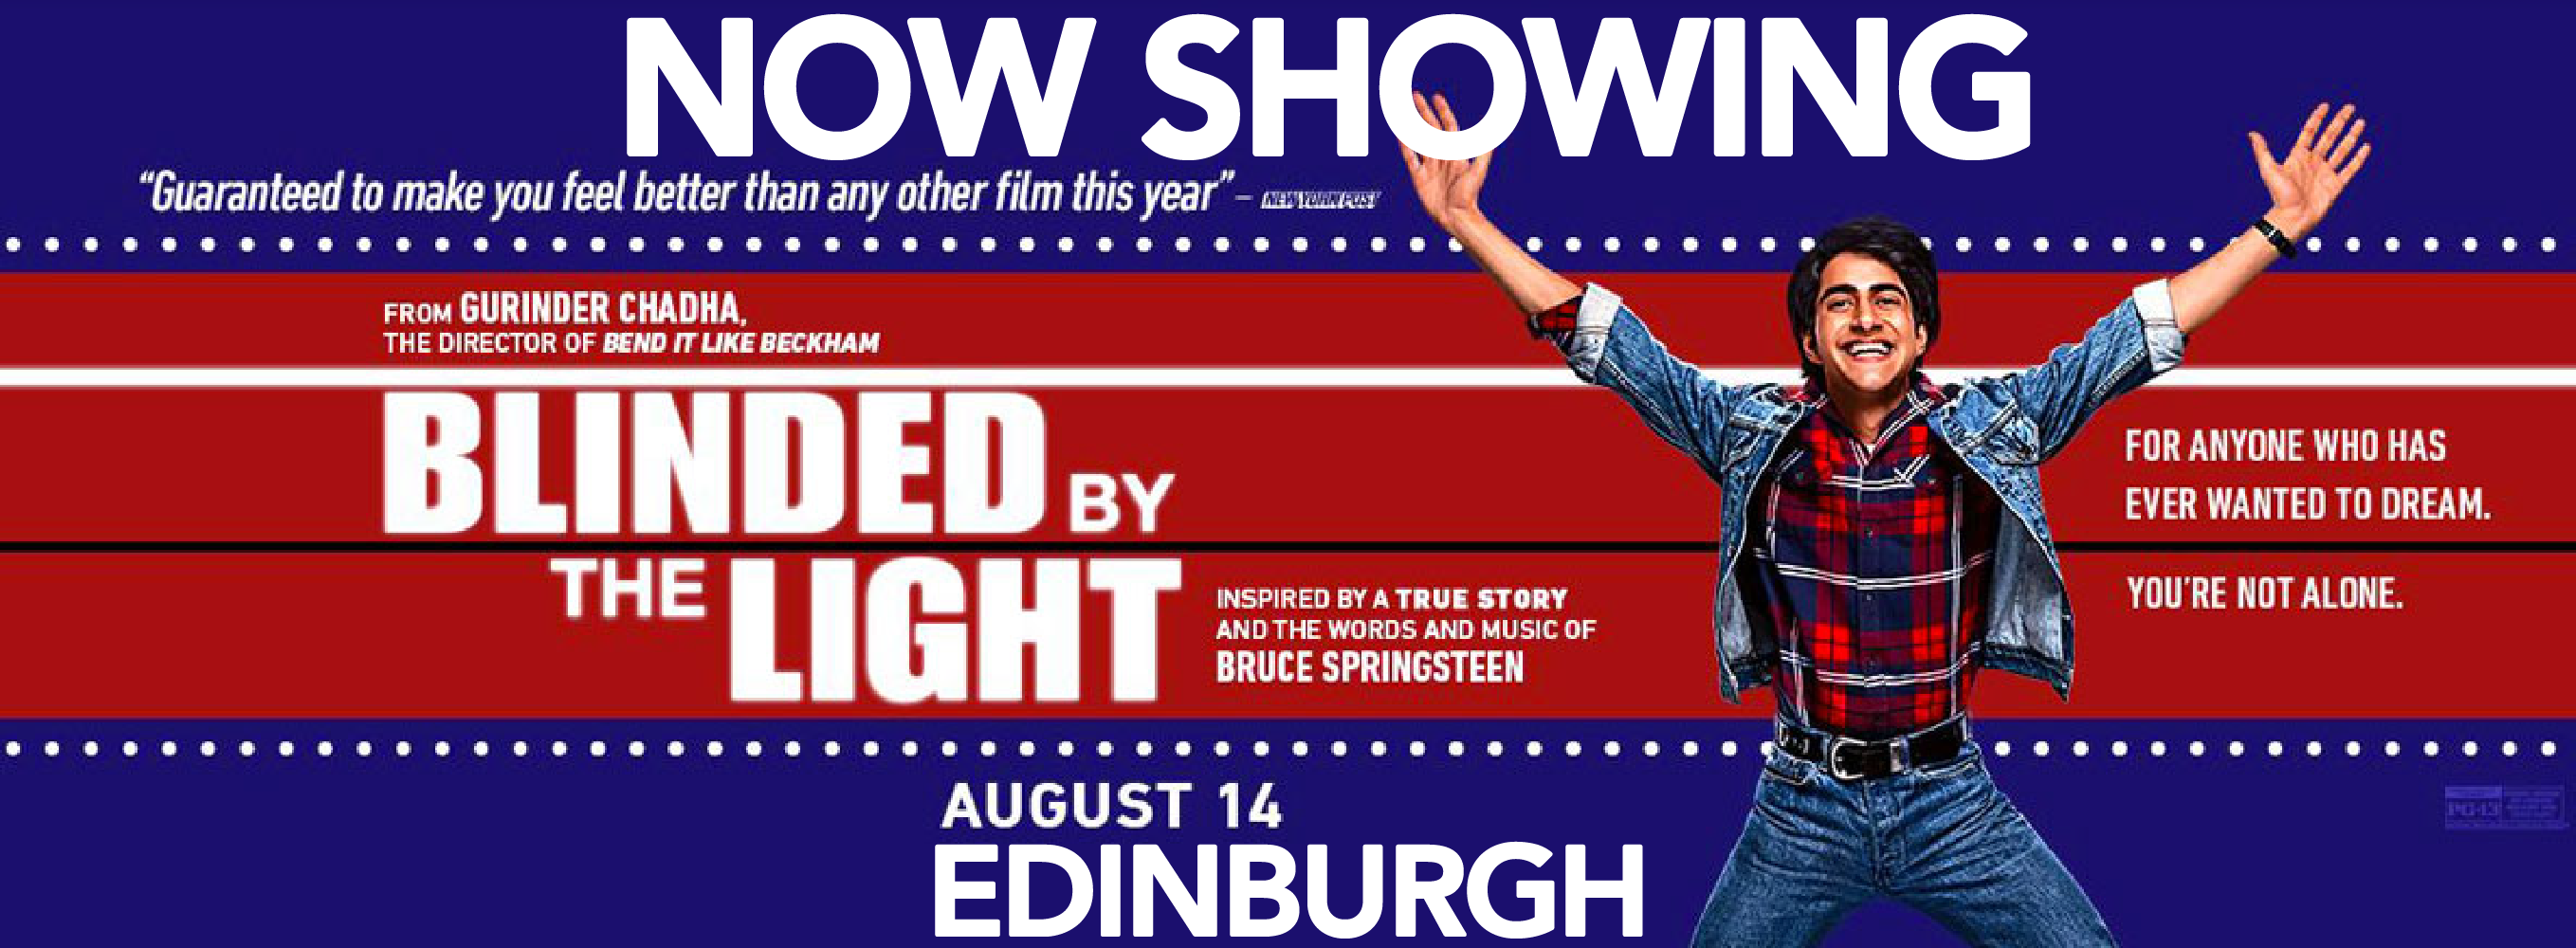 Cinema-Cafe-Edinburgh-Chesapeake-Showtimes